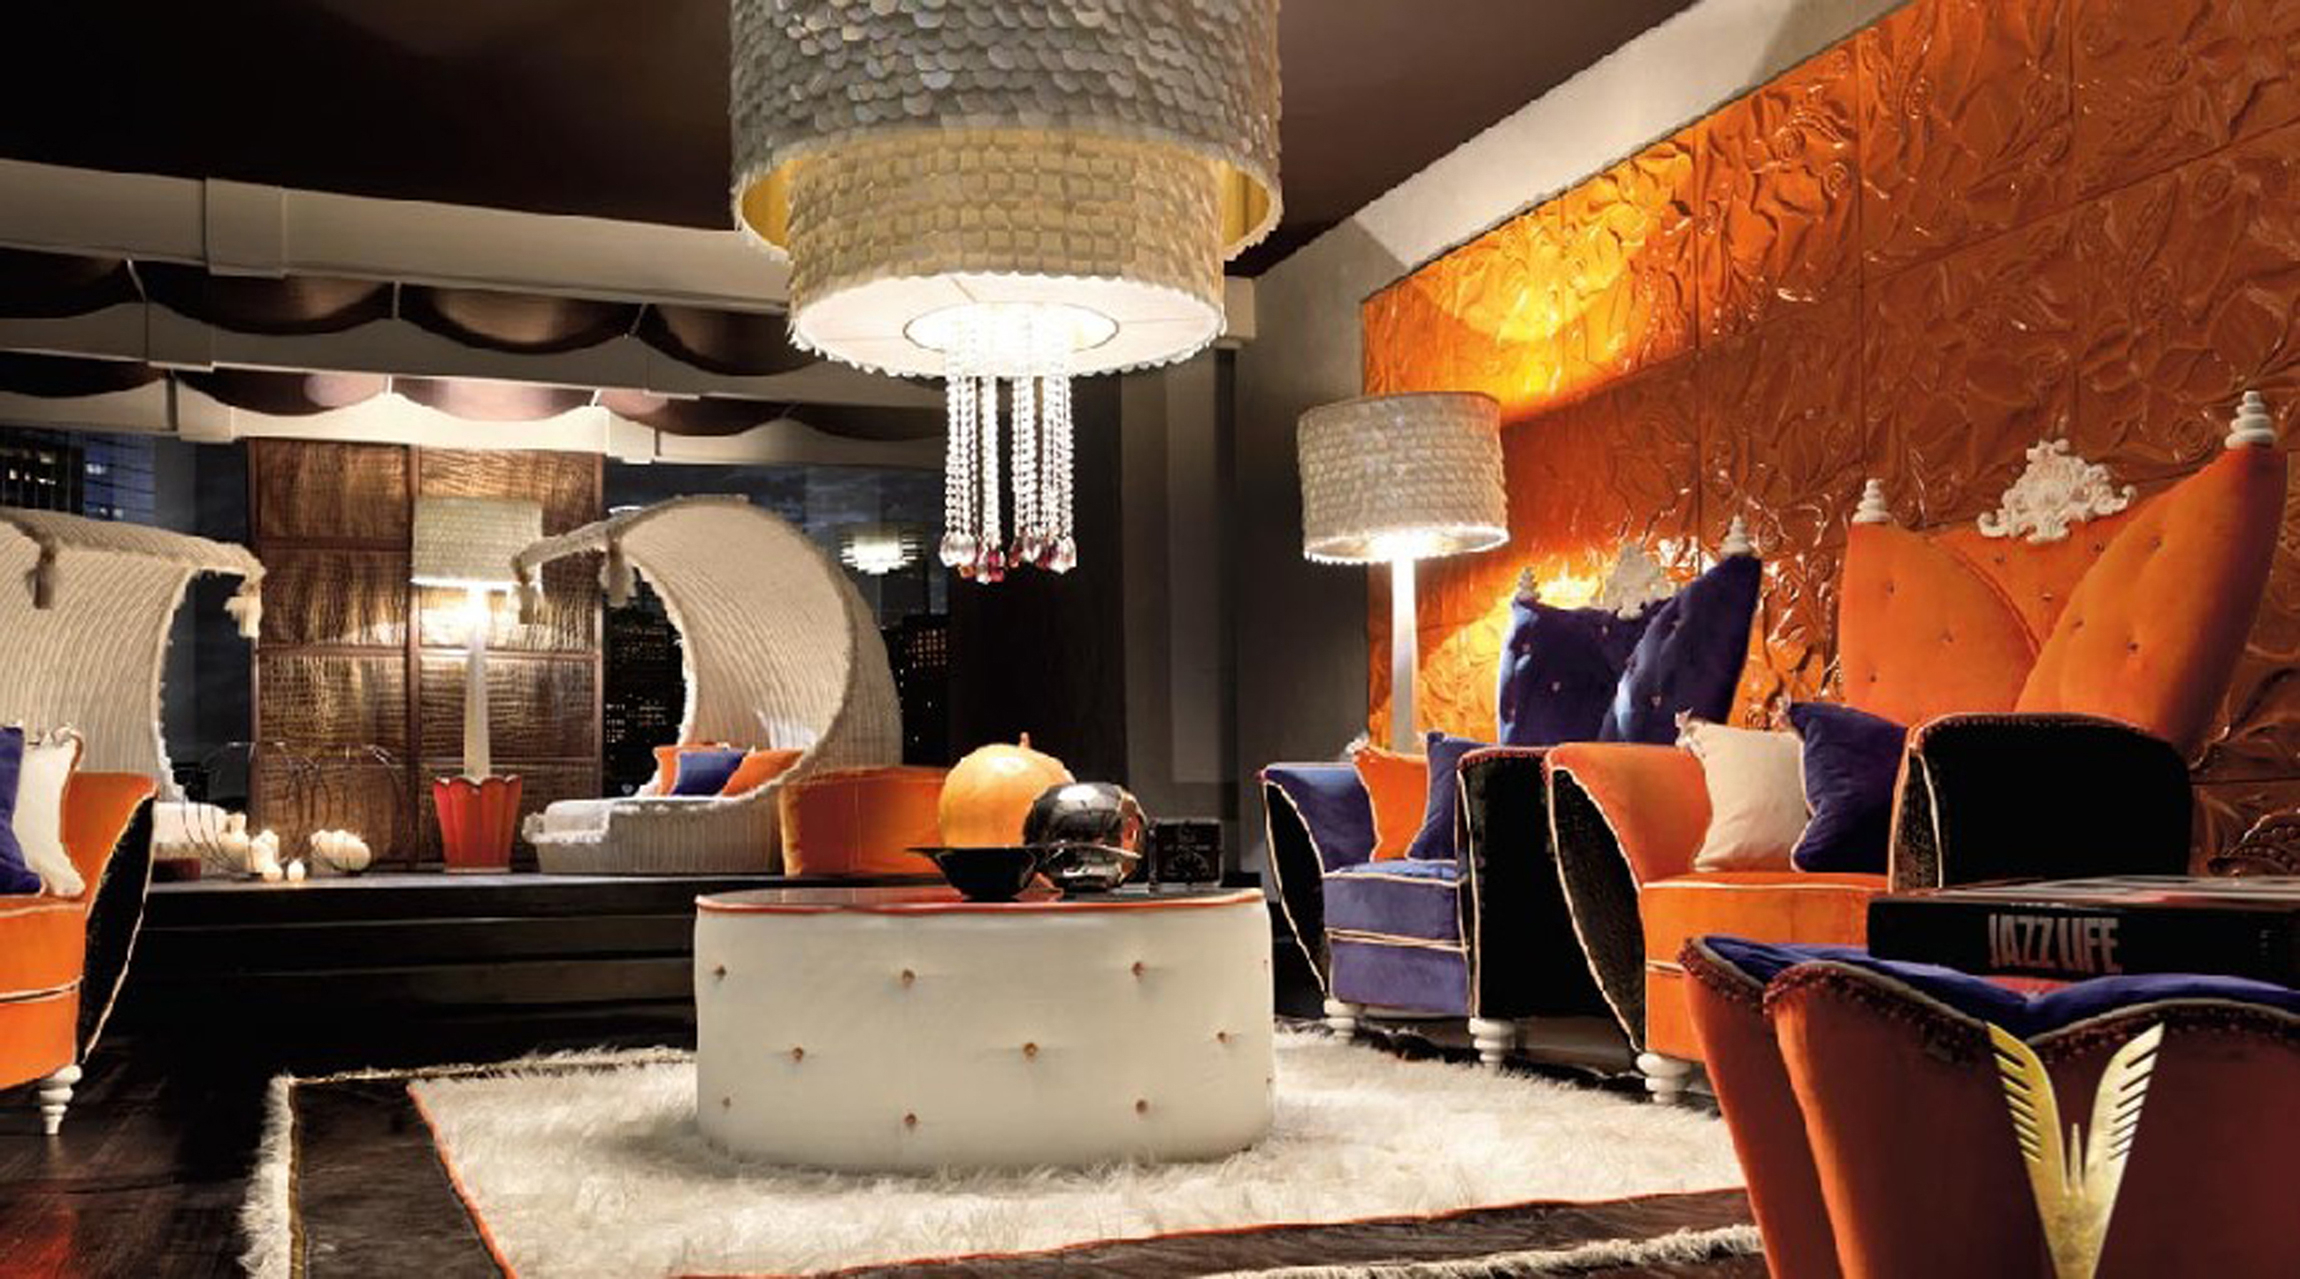 Luxurious Interiors Modern Living In Bold Colors (Image 19 of 123)